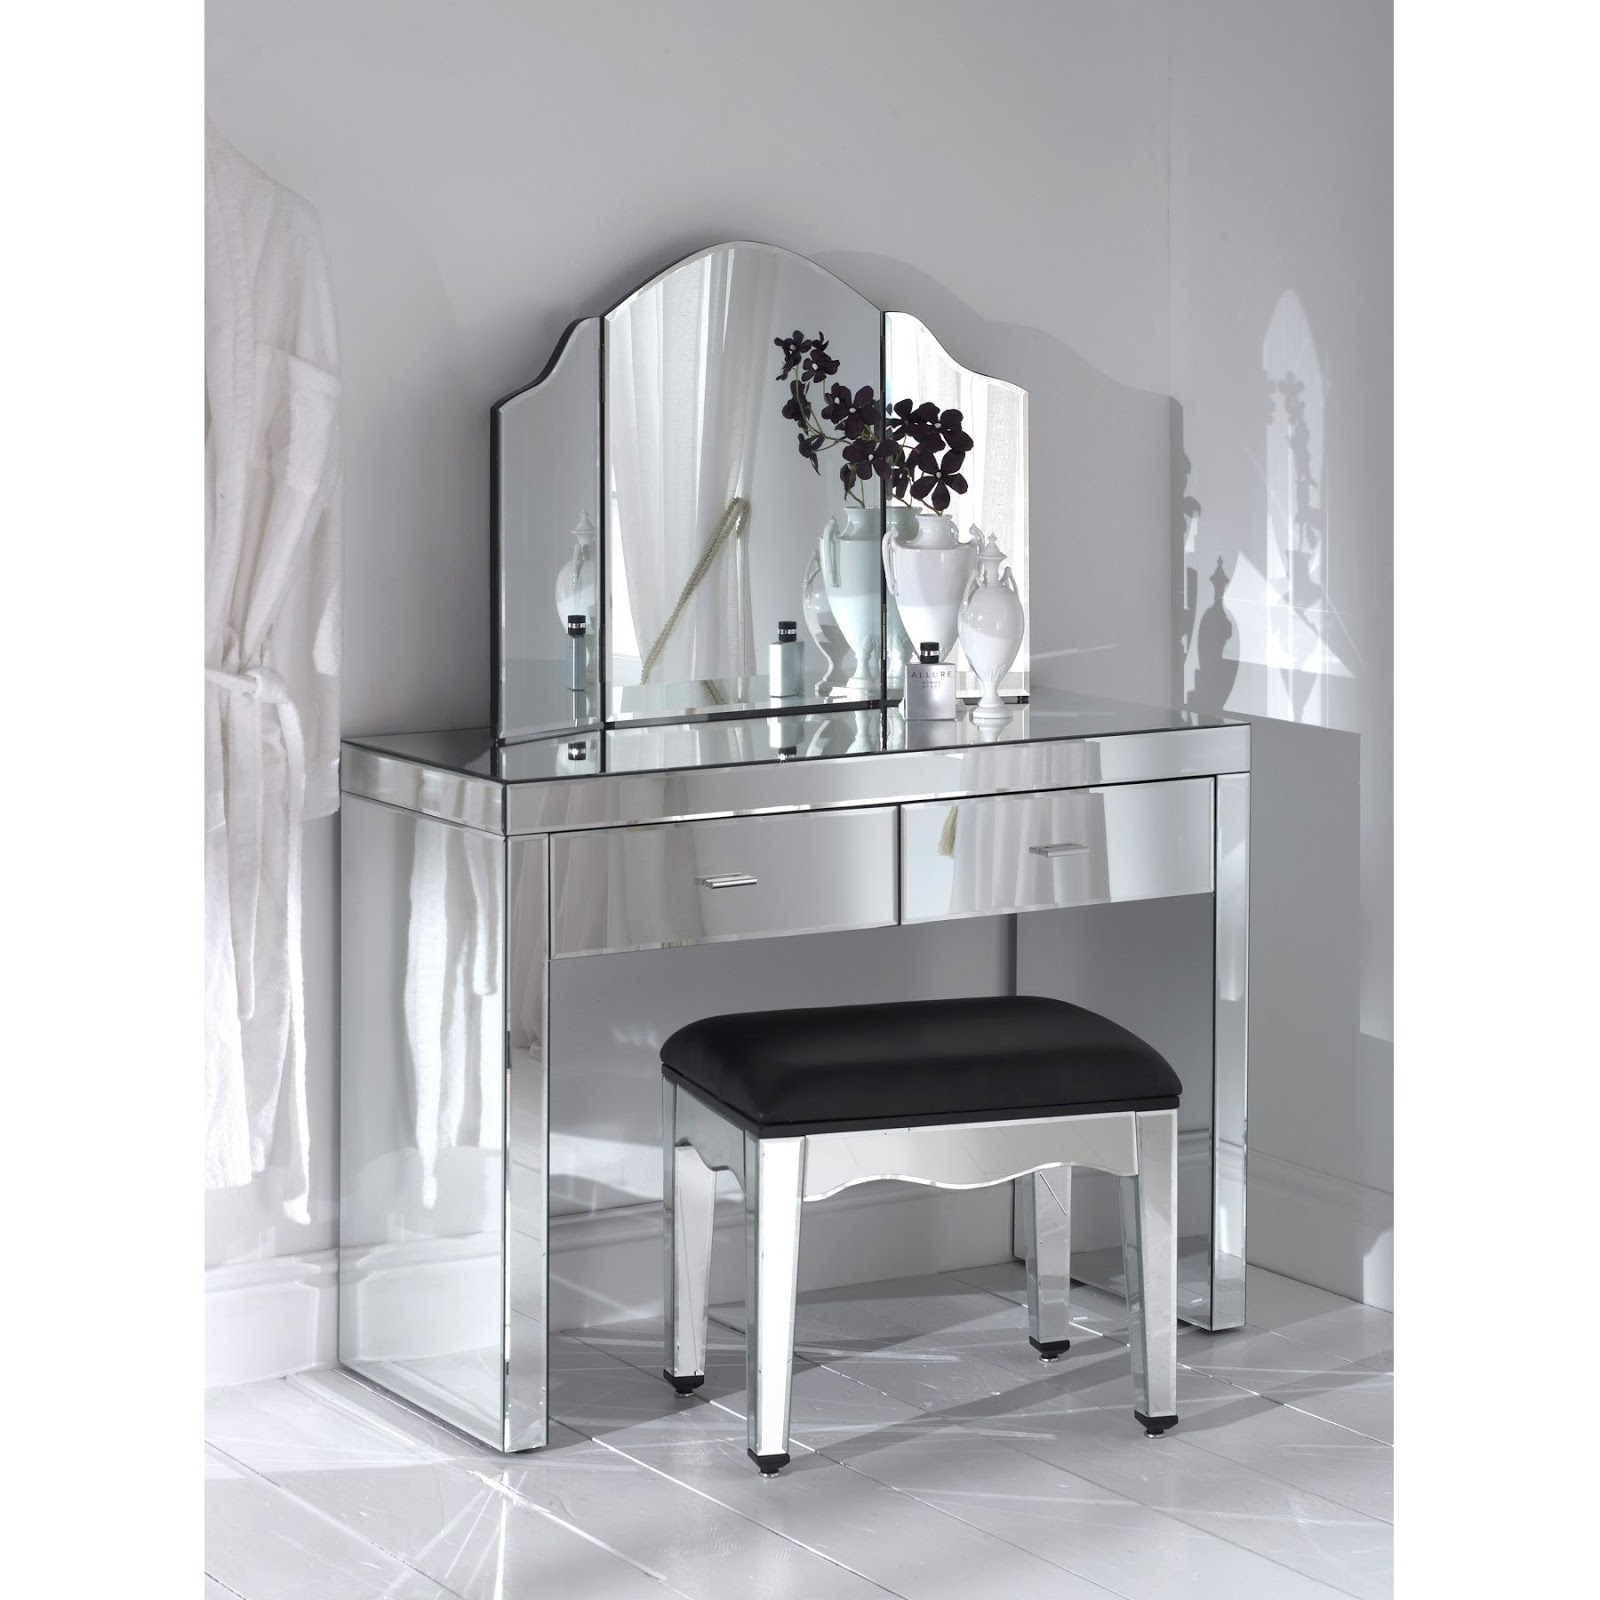 divine decor on a dime is mirrored furniture here to stay. Black Bedroom Furniture Sets. Home Design Ideas